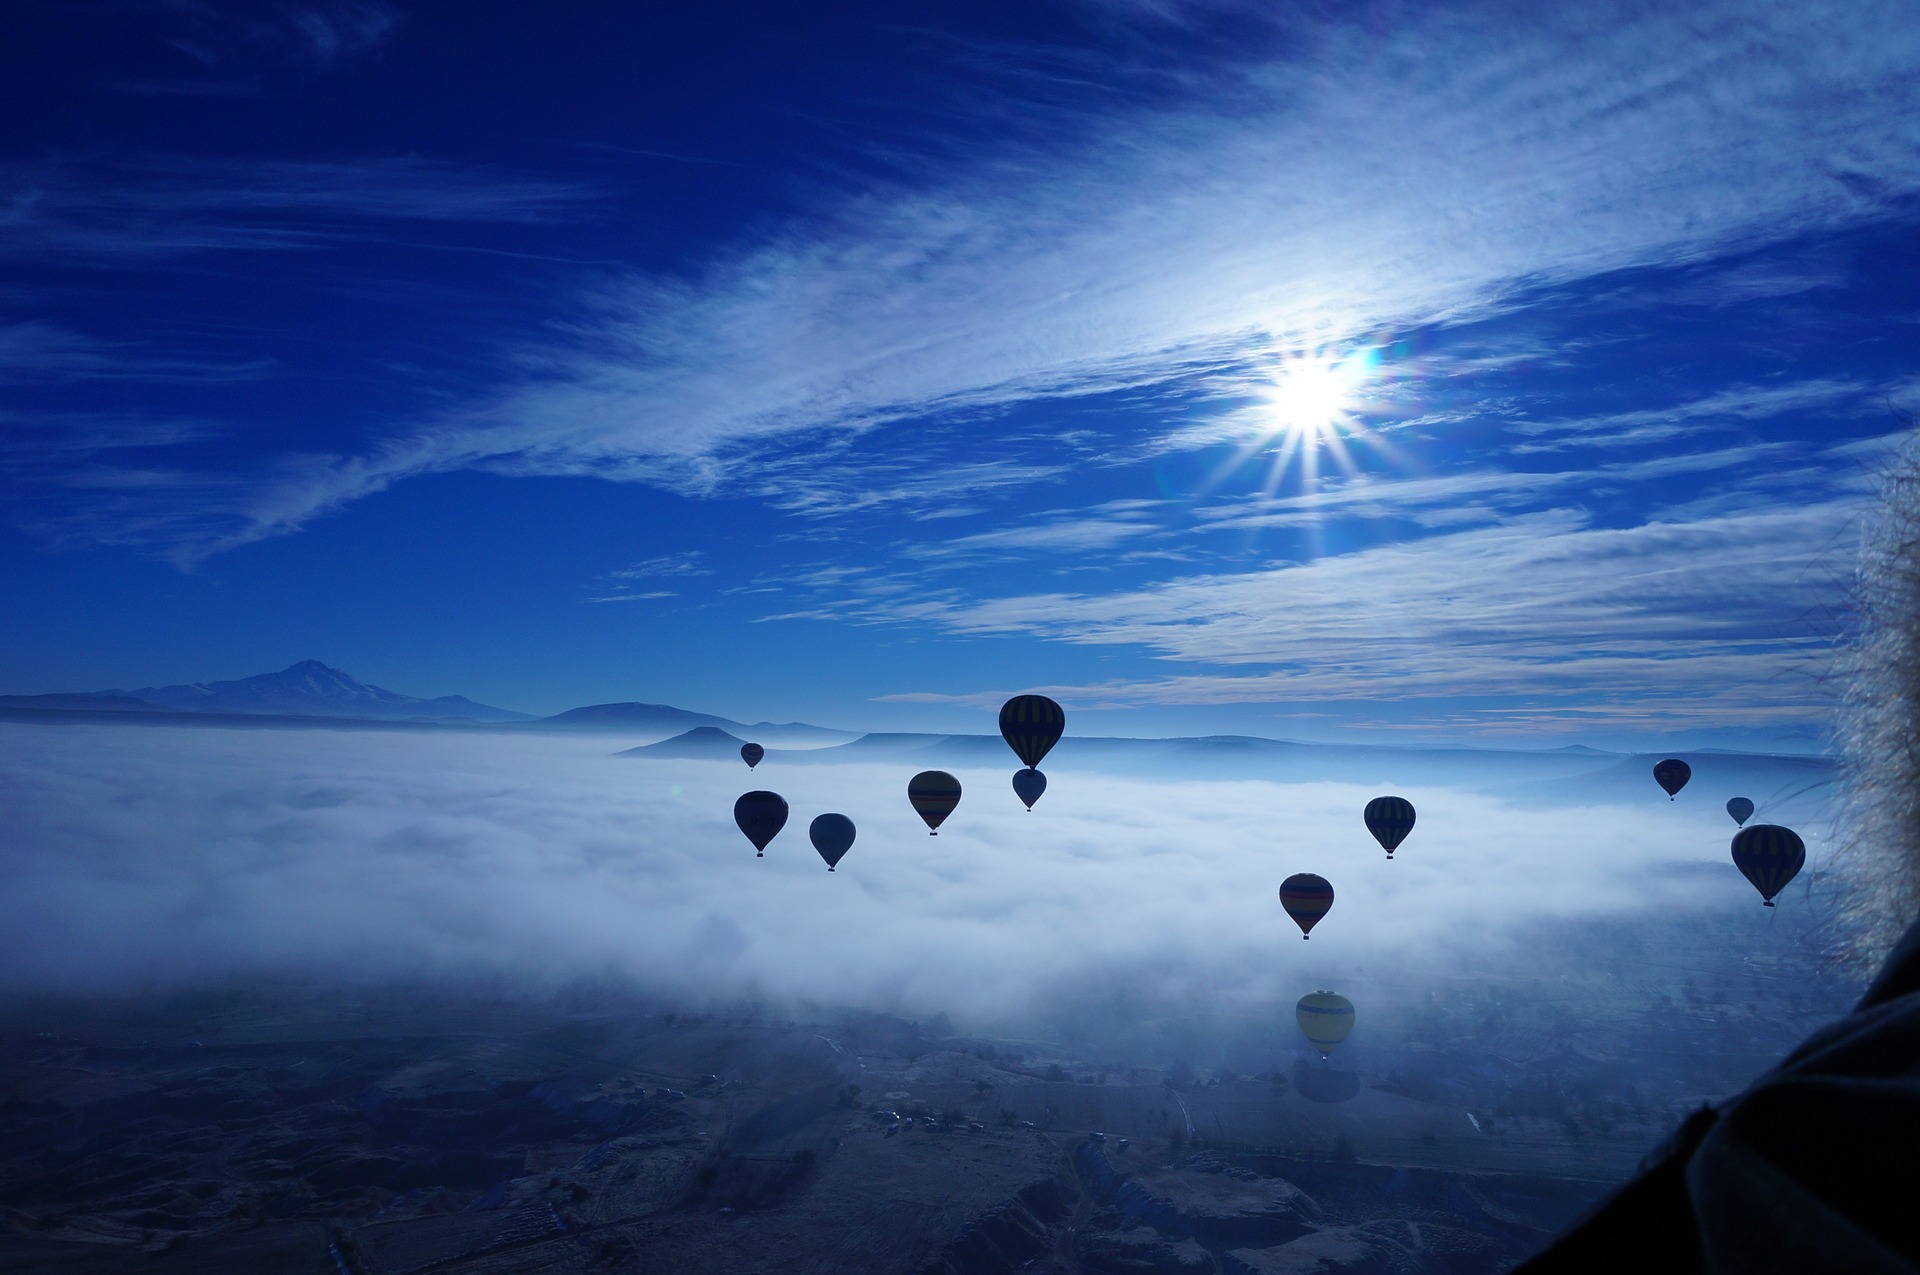 All You Need To Know About Google's Project Loon